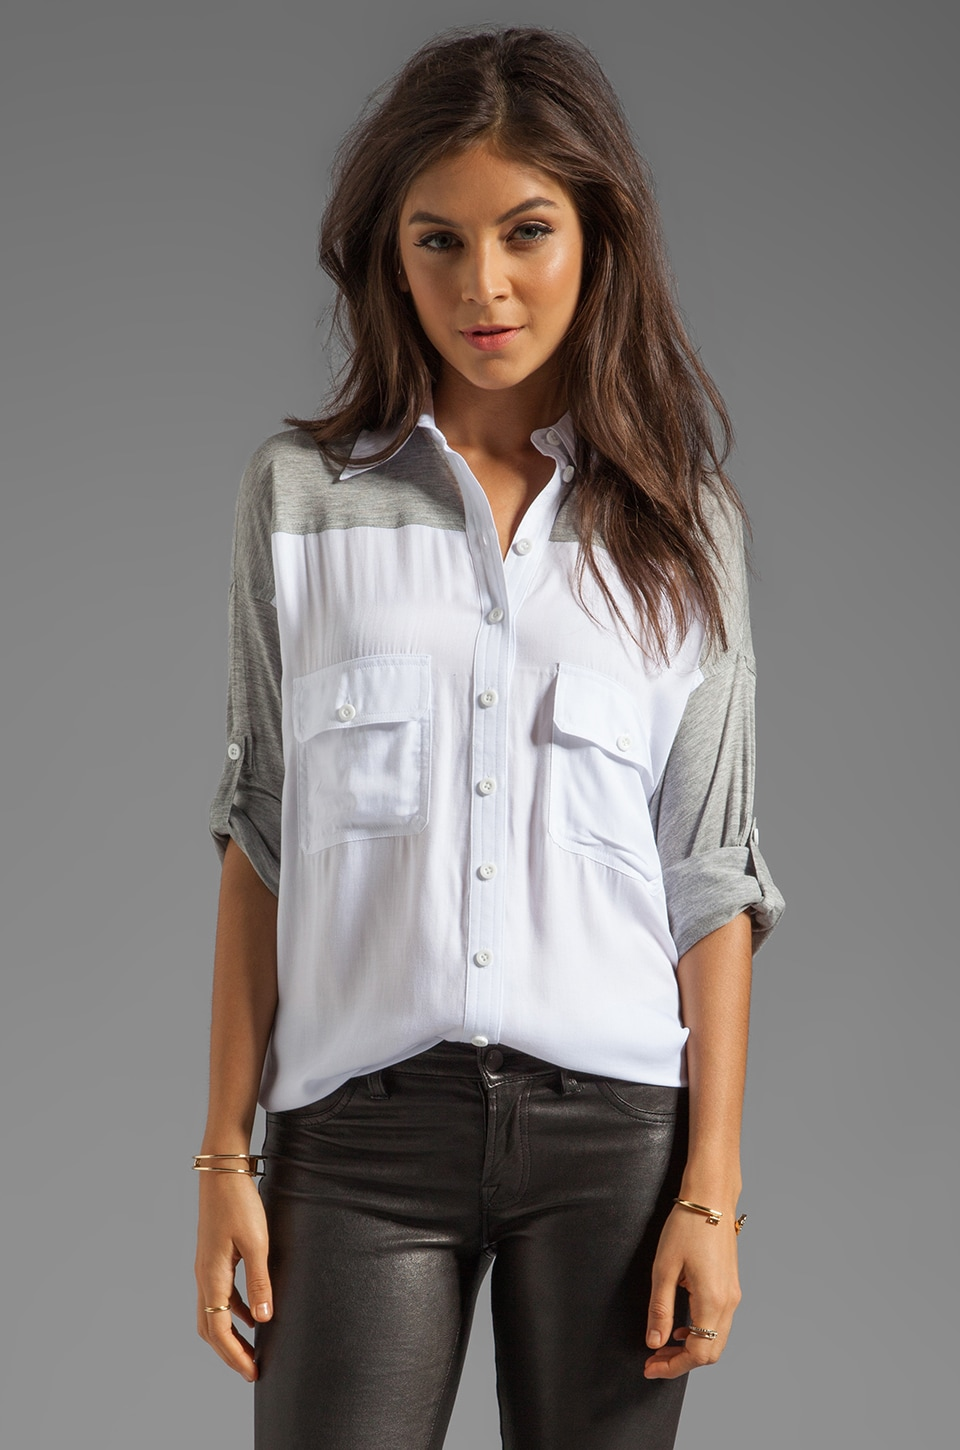 primary Combo Wingback Shirt in White/Melange Grey